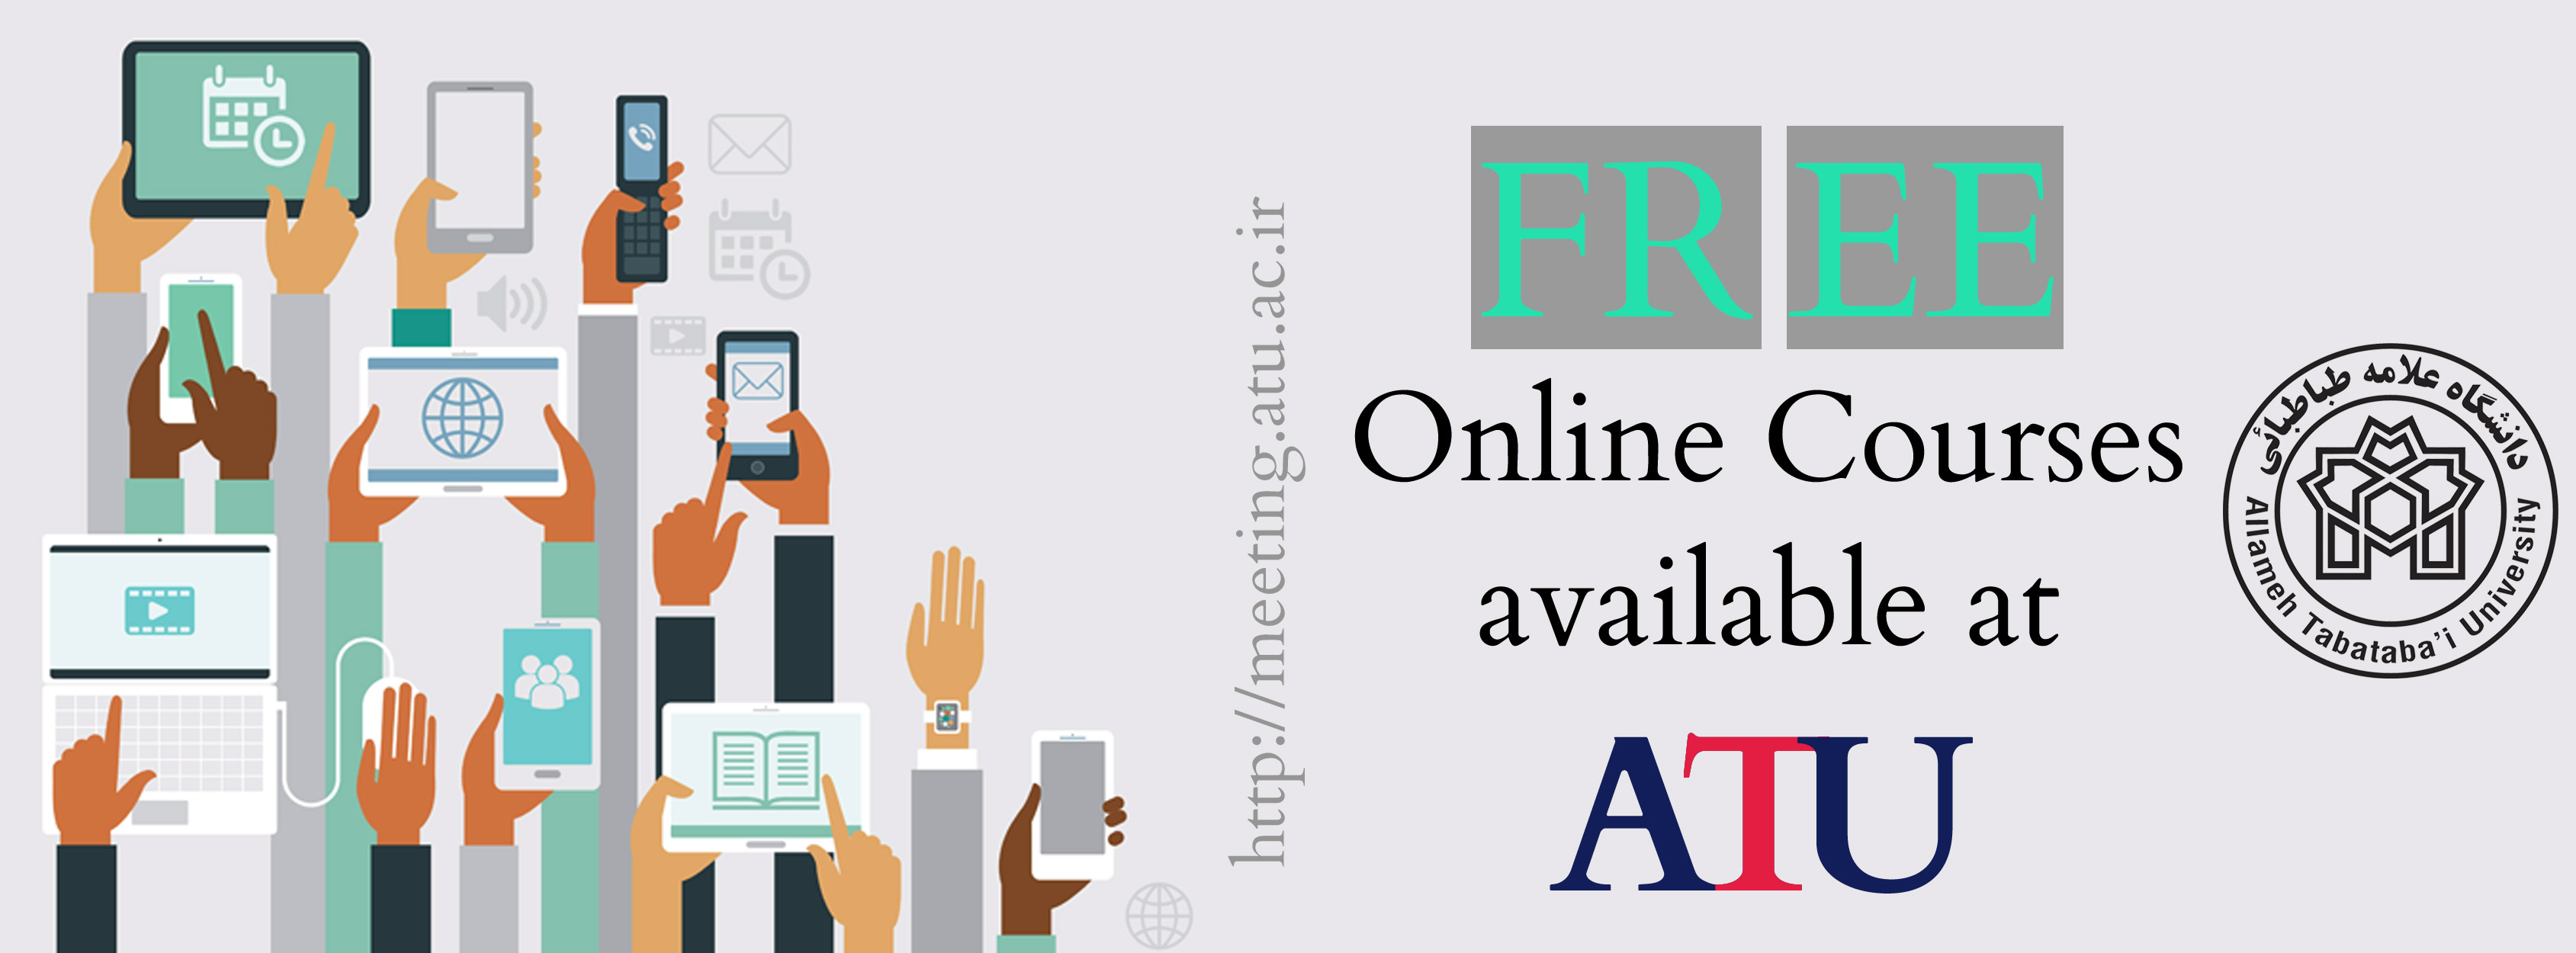 Free online courses at ATU